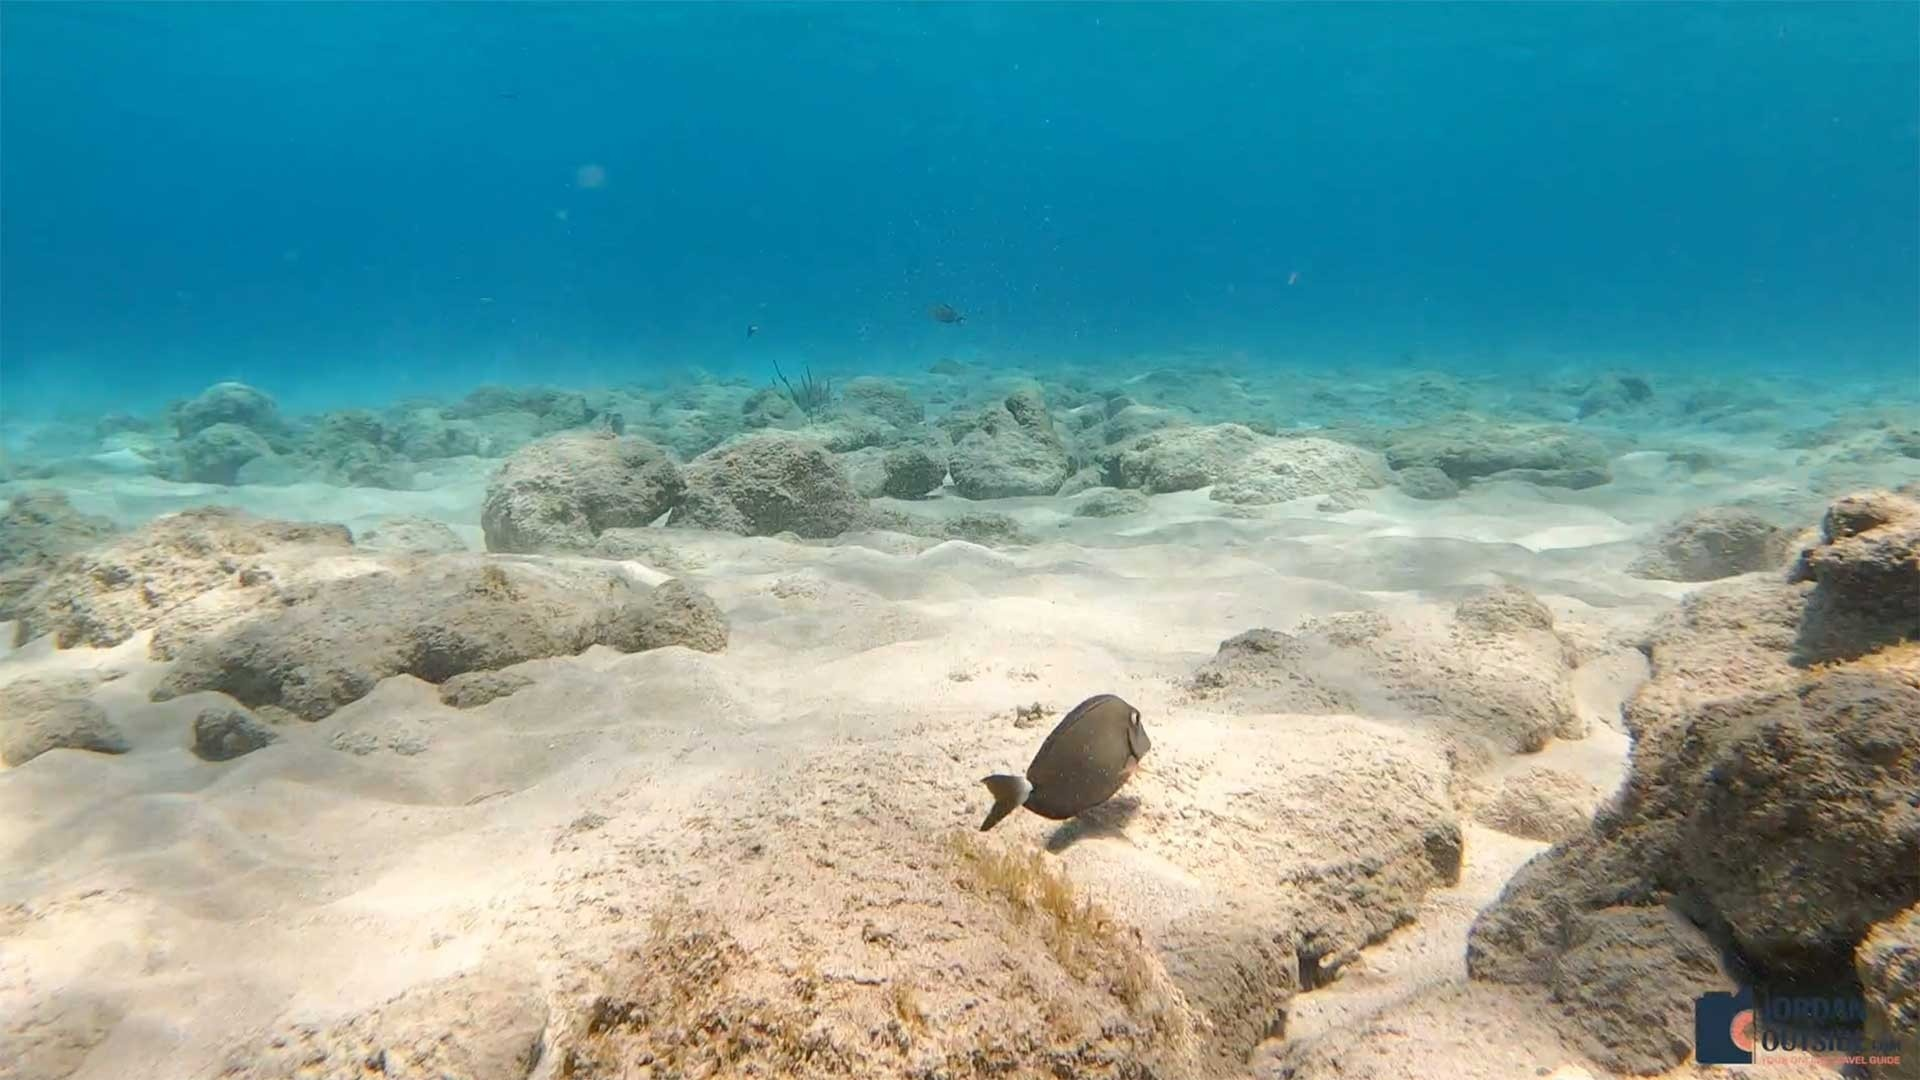 Fish in the sea at Cane Bay, St. Croix